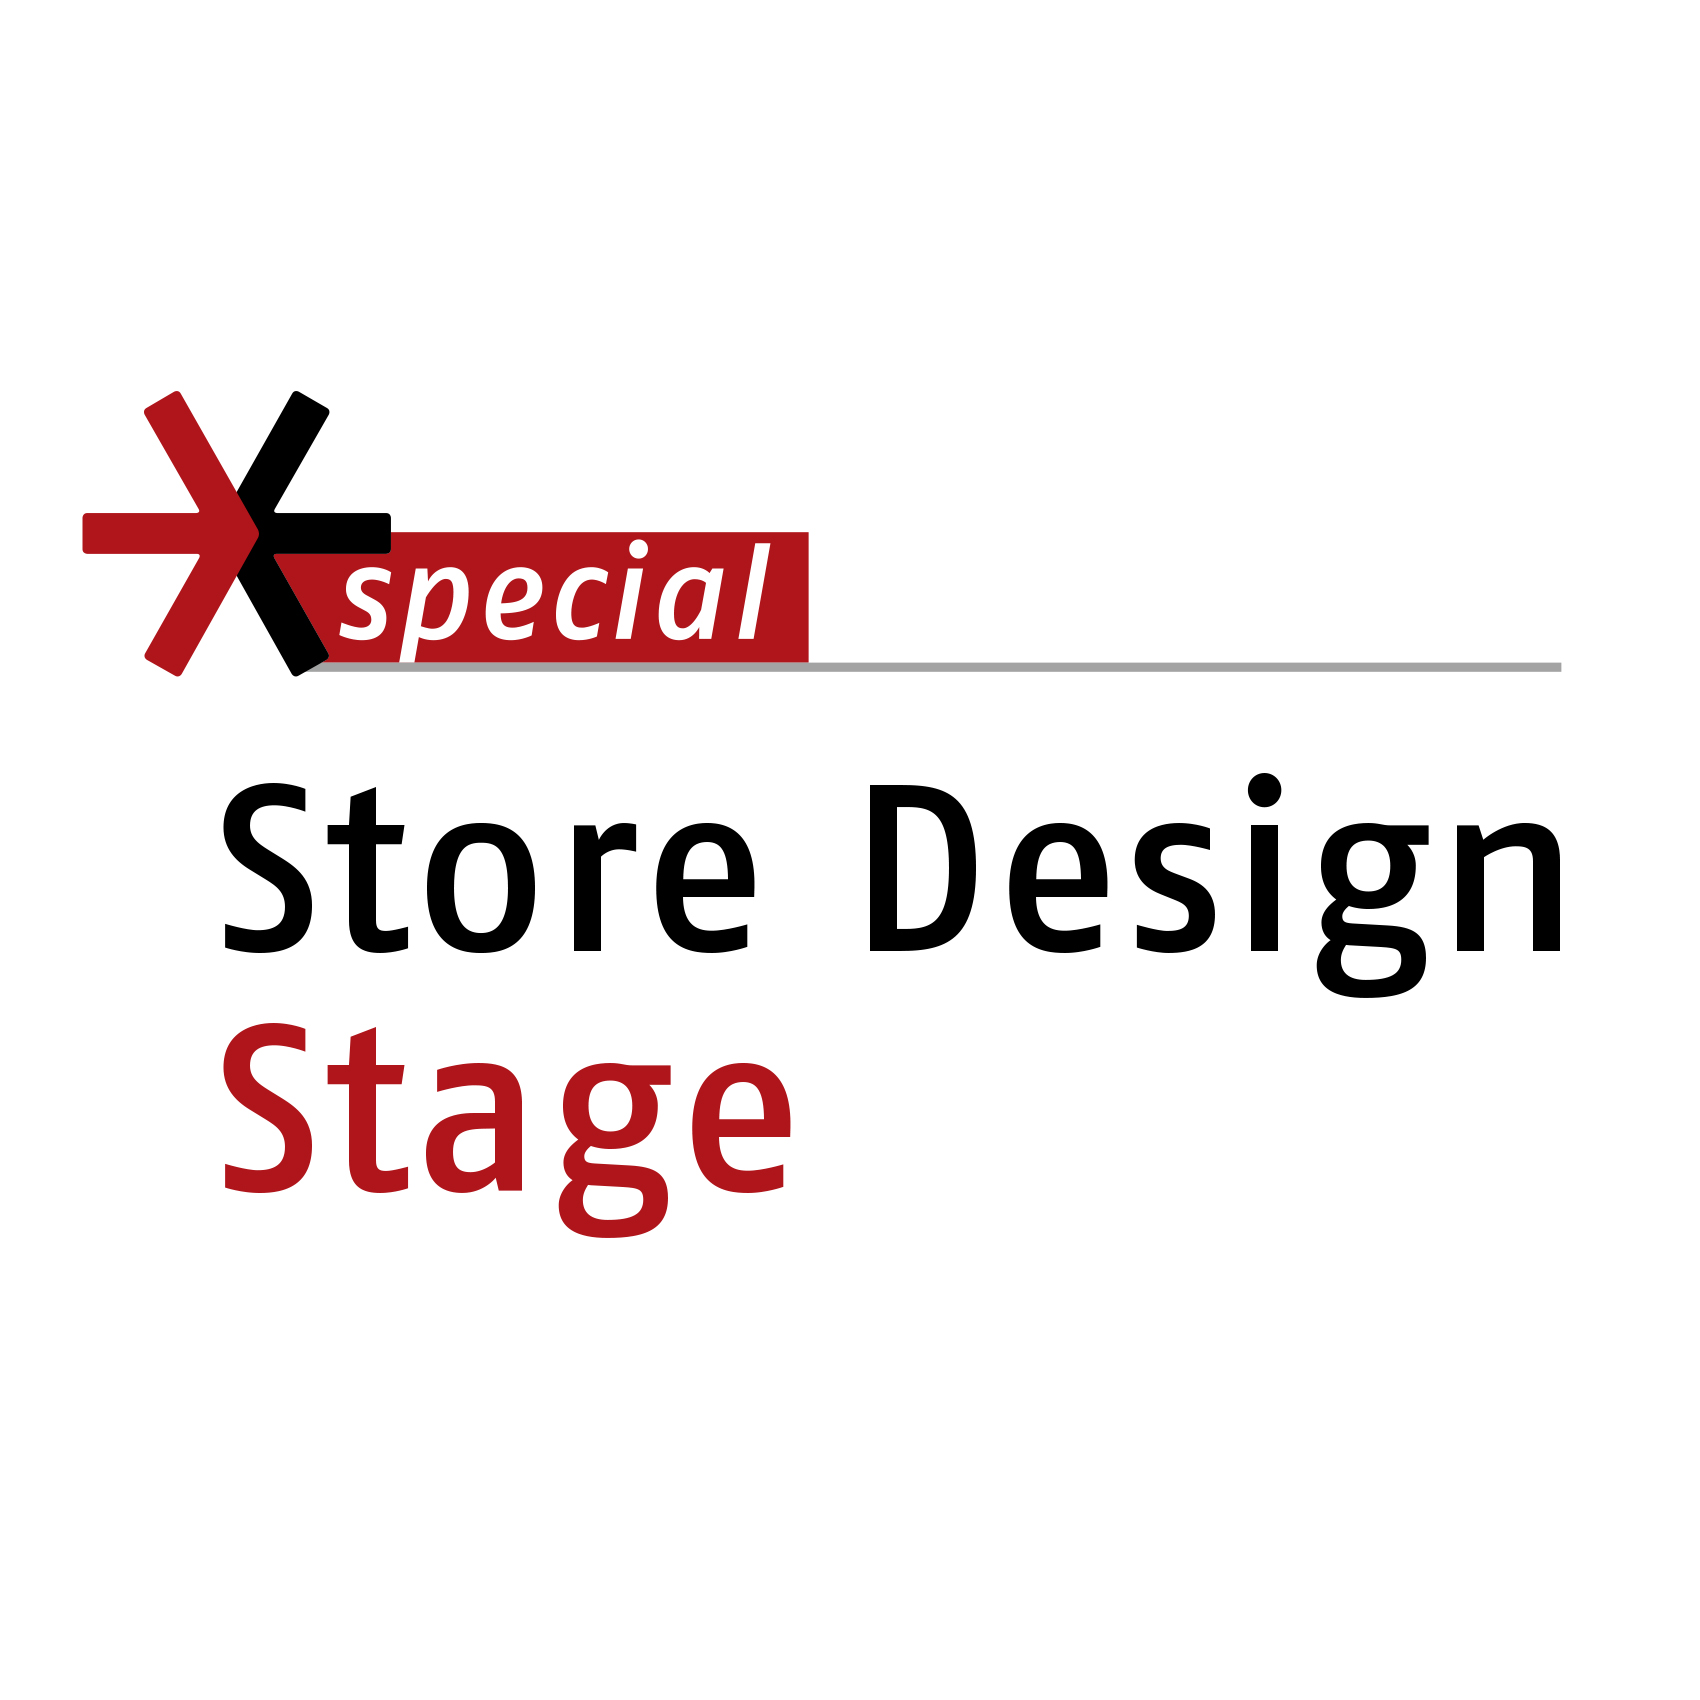 Store Design Stage